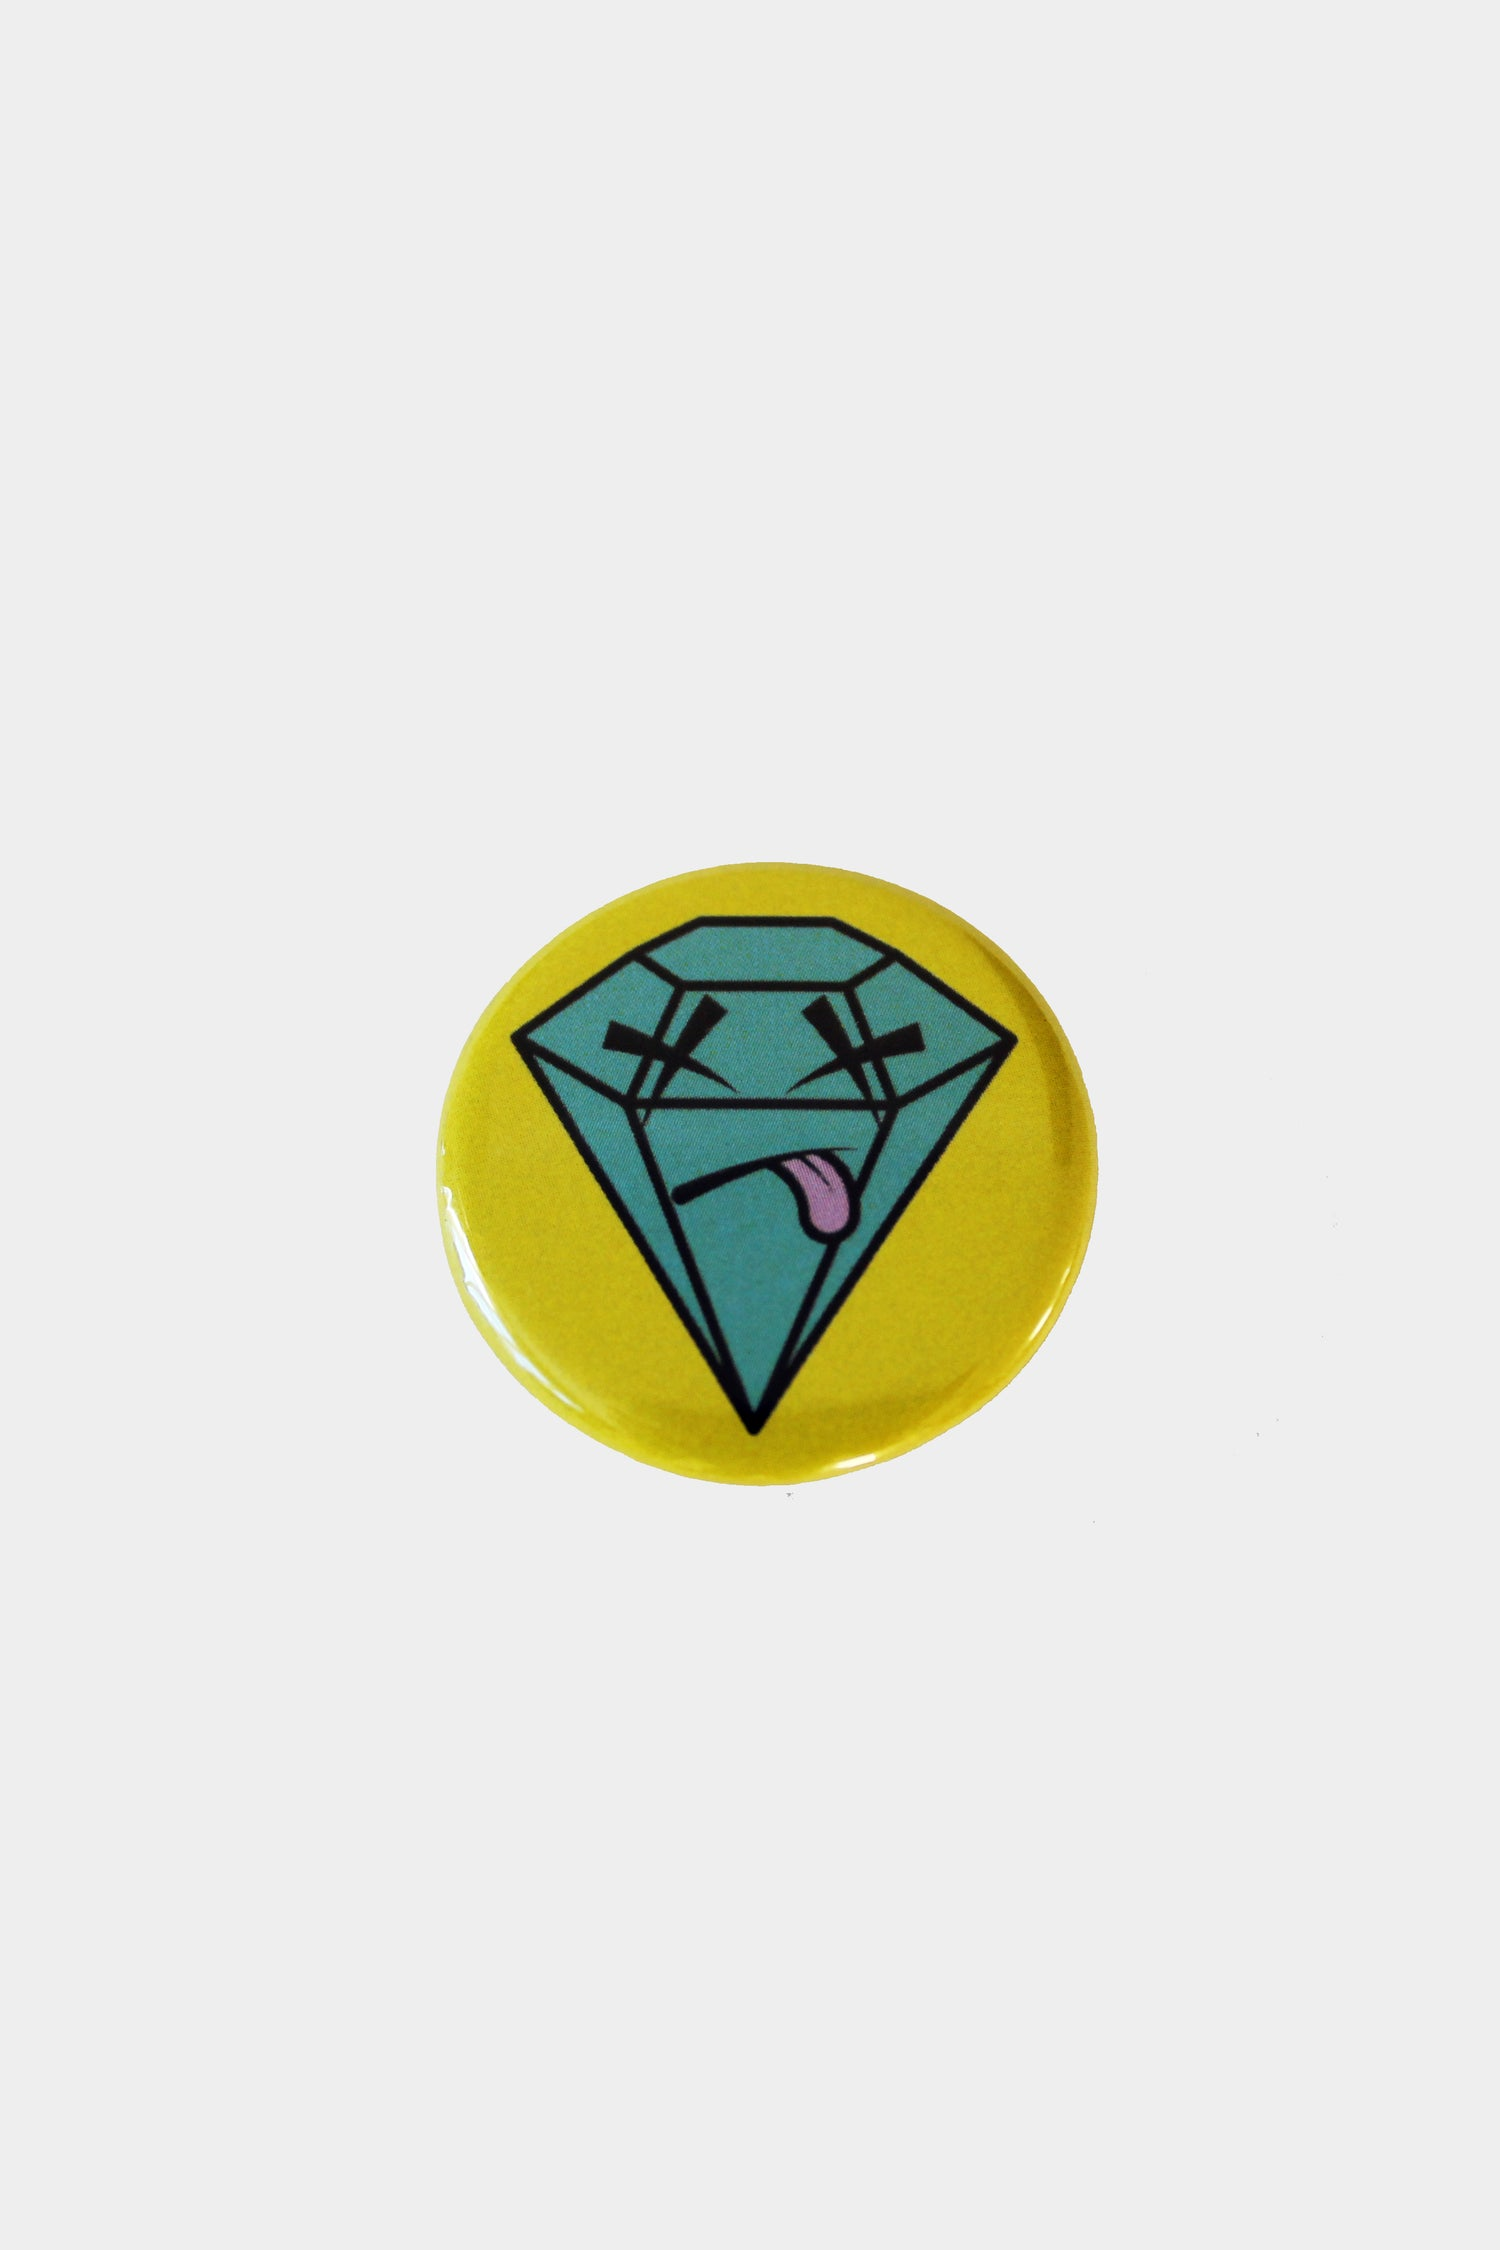 Image of Dead Diamond Badge